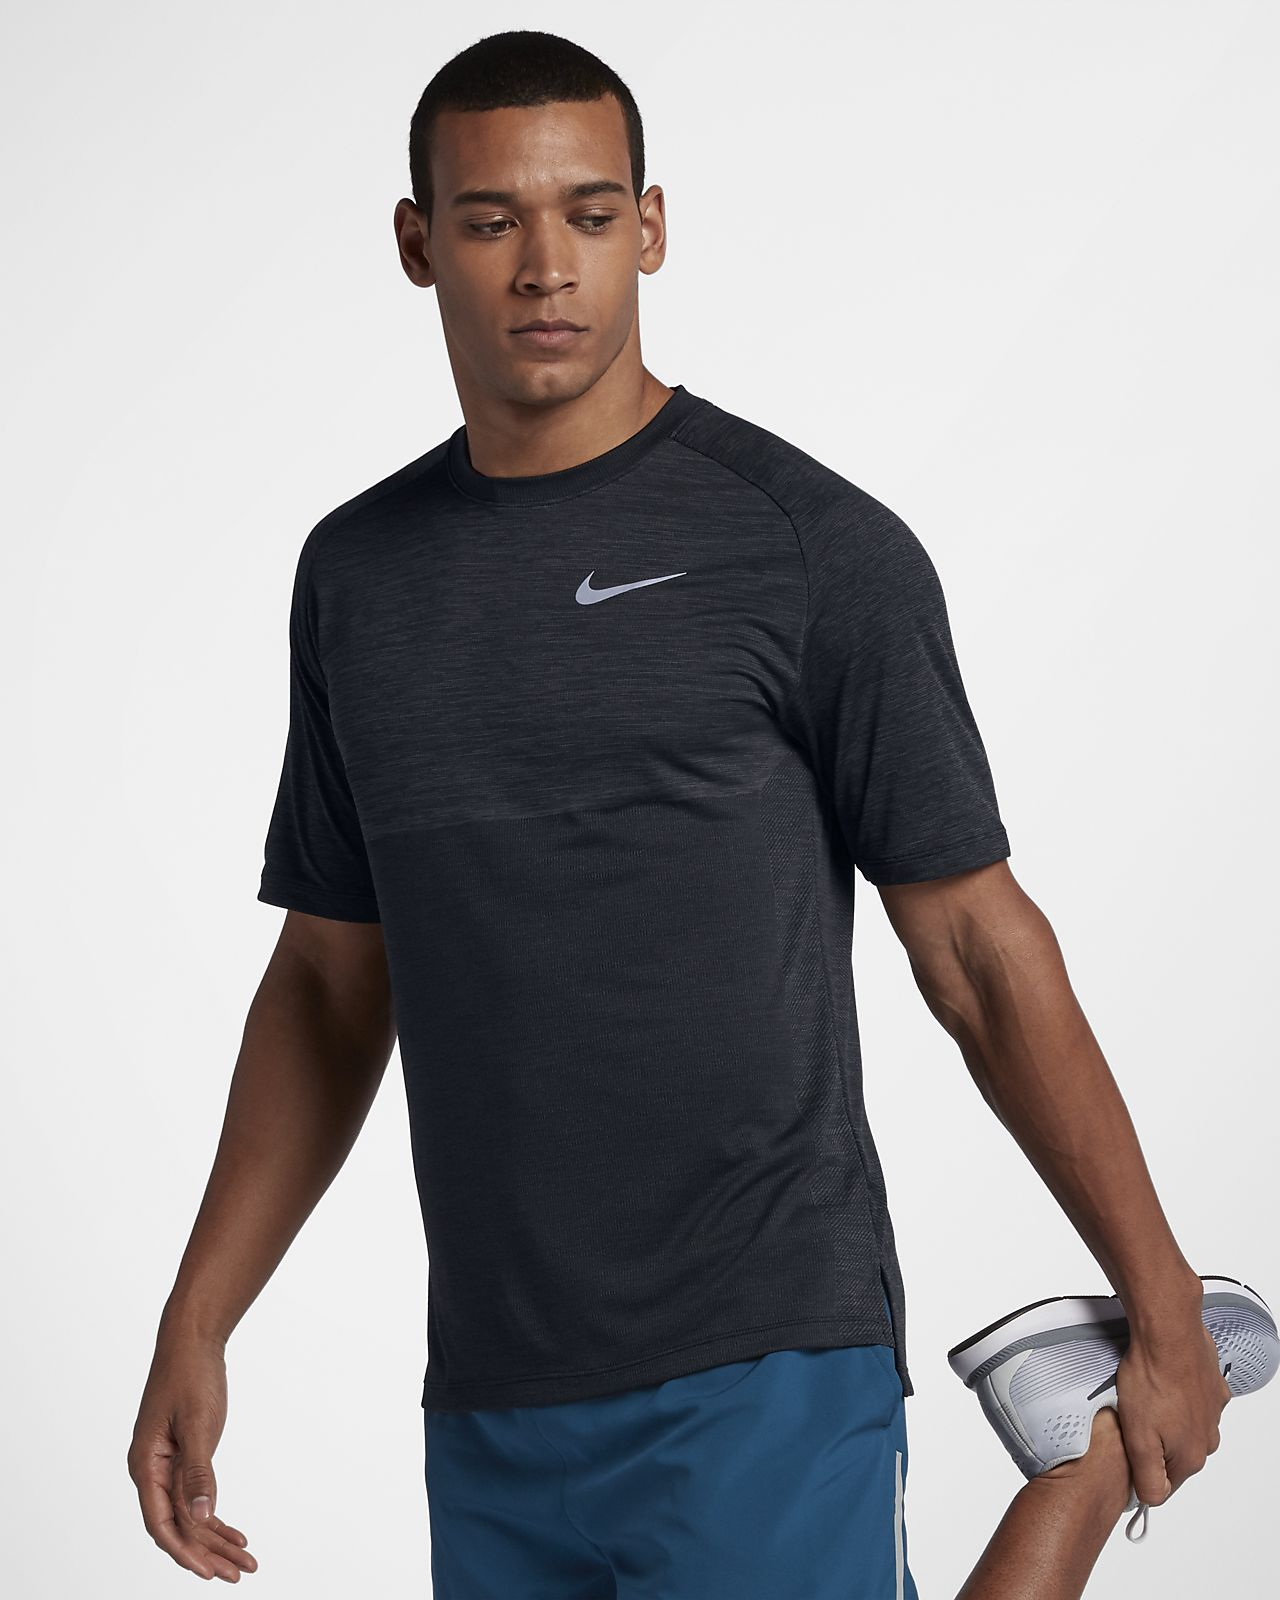 Nike Dri Fit Medalist Mens Short Sleeve Running Top Nike